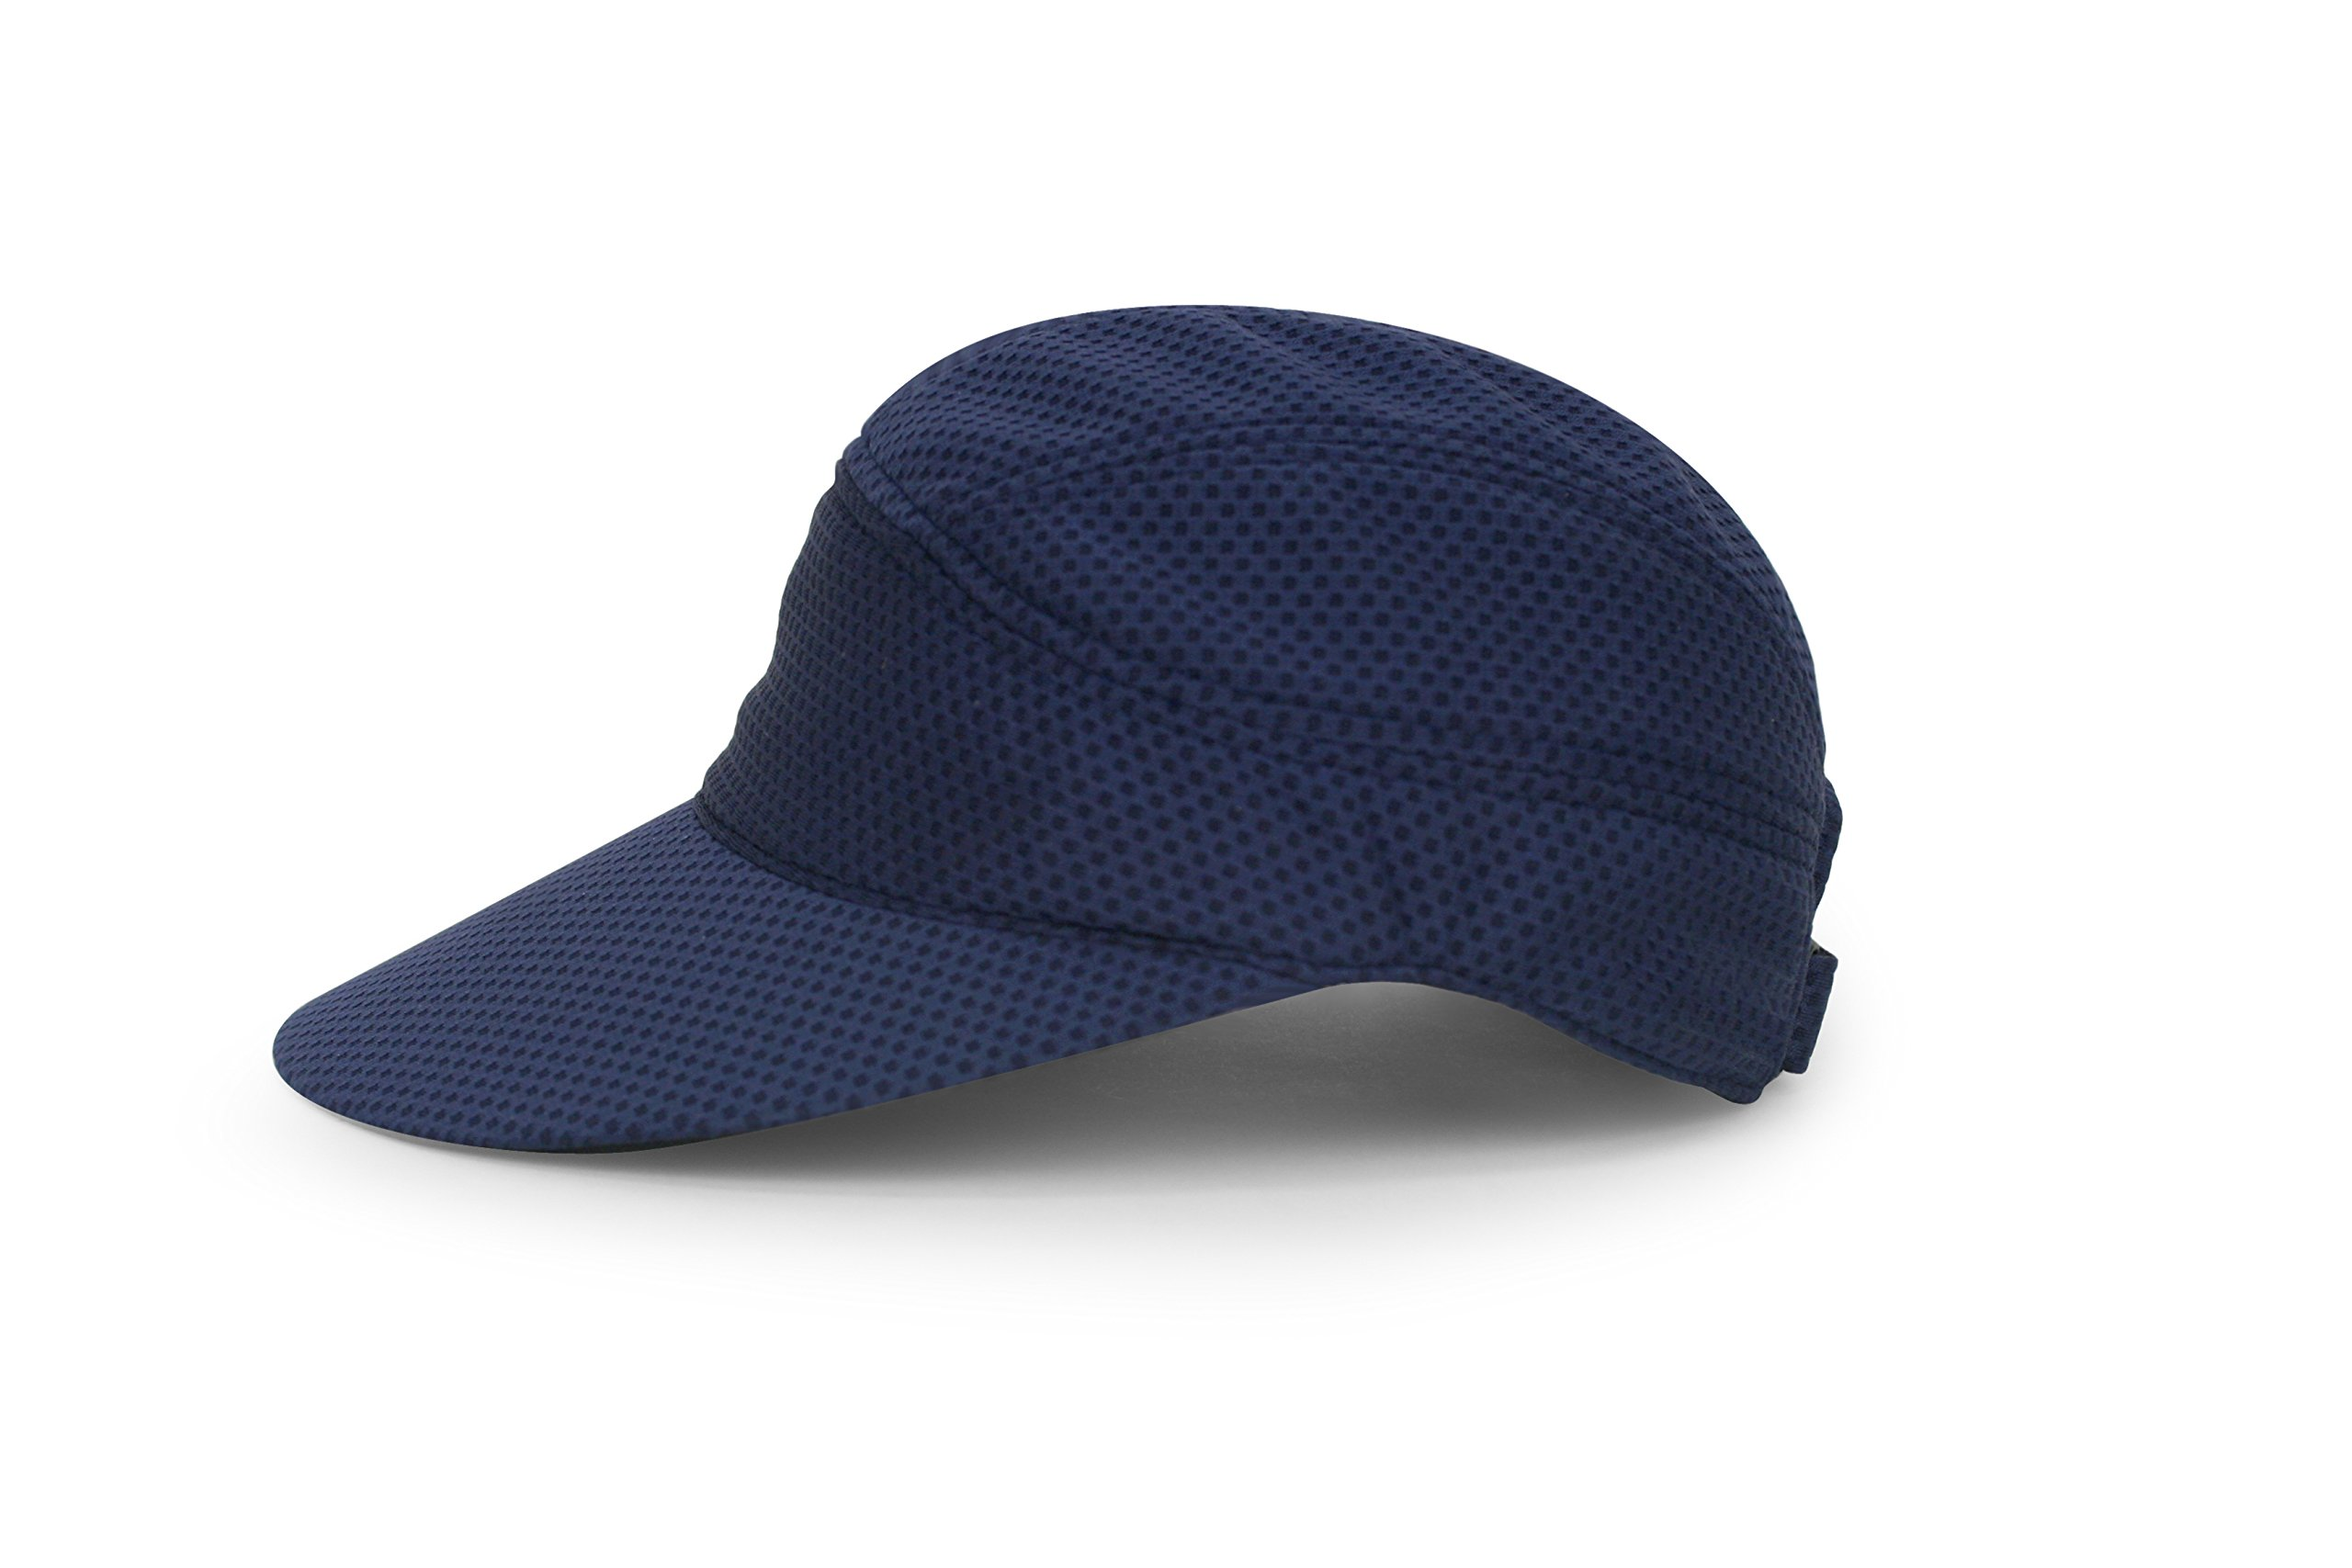 Sunday Afternoons Sprinter Cap, Navy, Medium